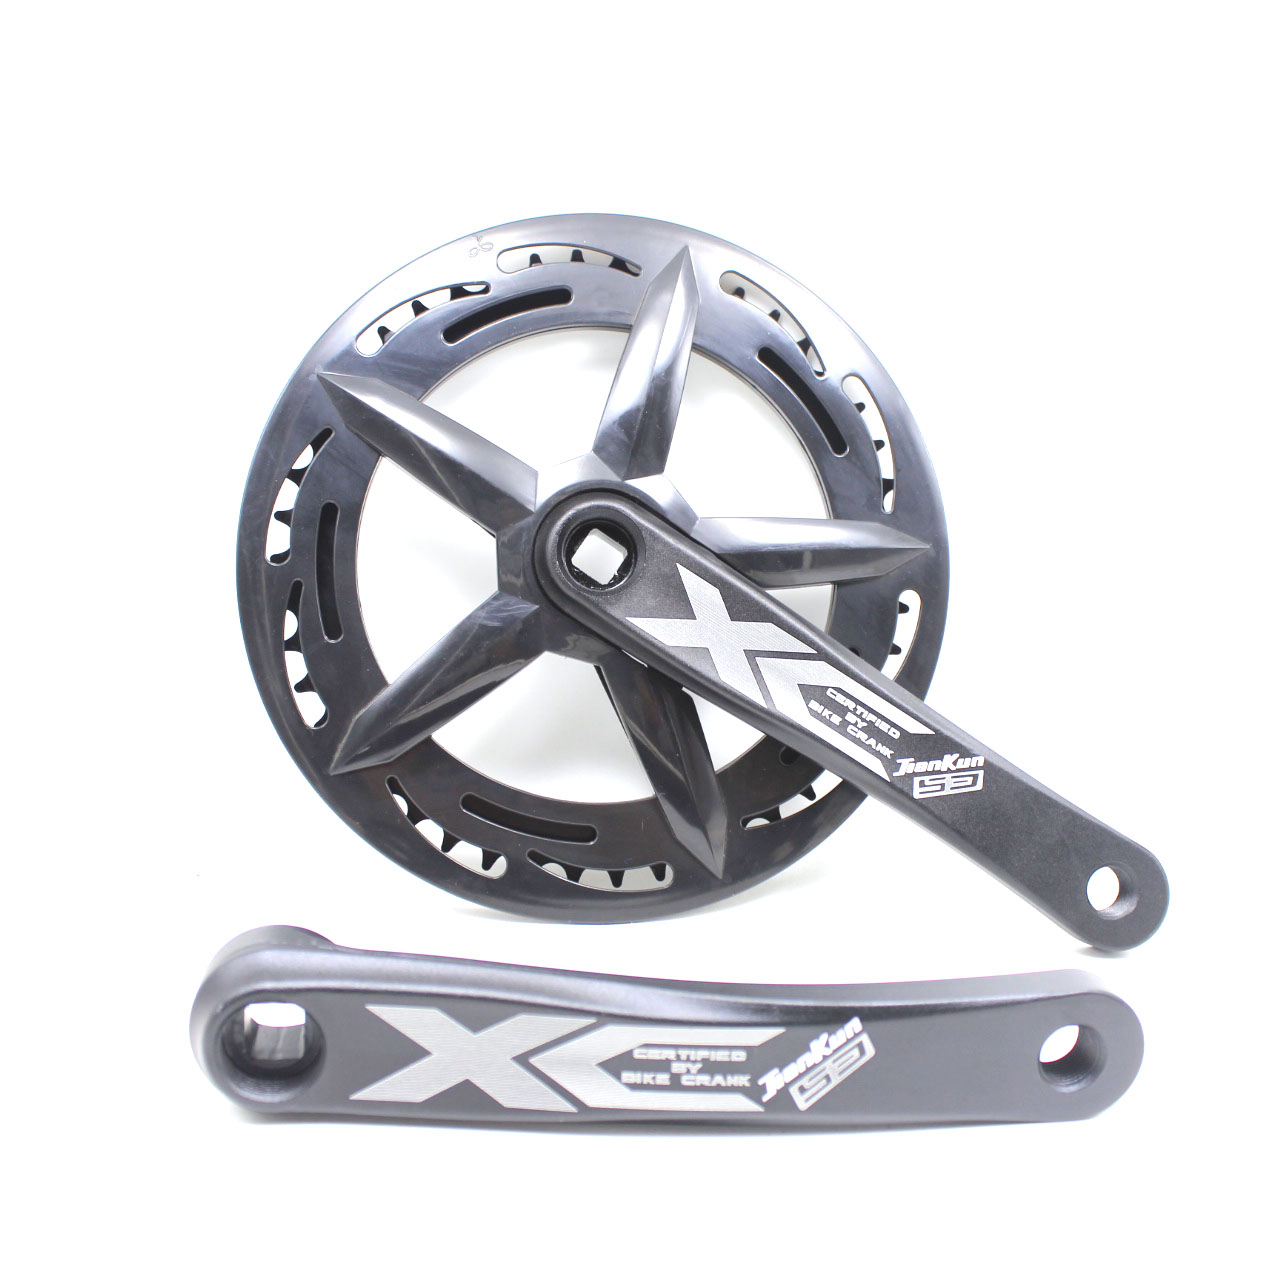 Mountain Bike Crankset Aluminum Alloy Bicycle Crank 170mm Square Hole